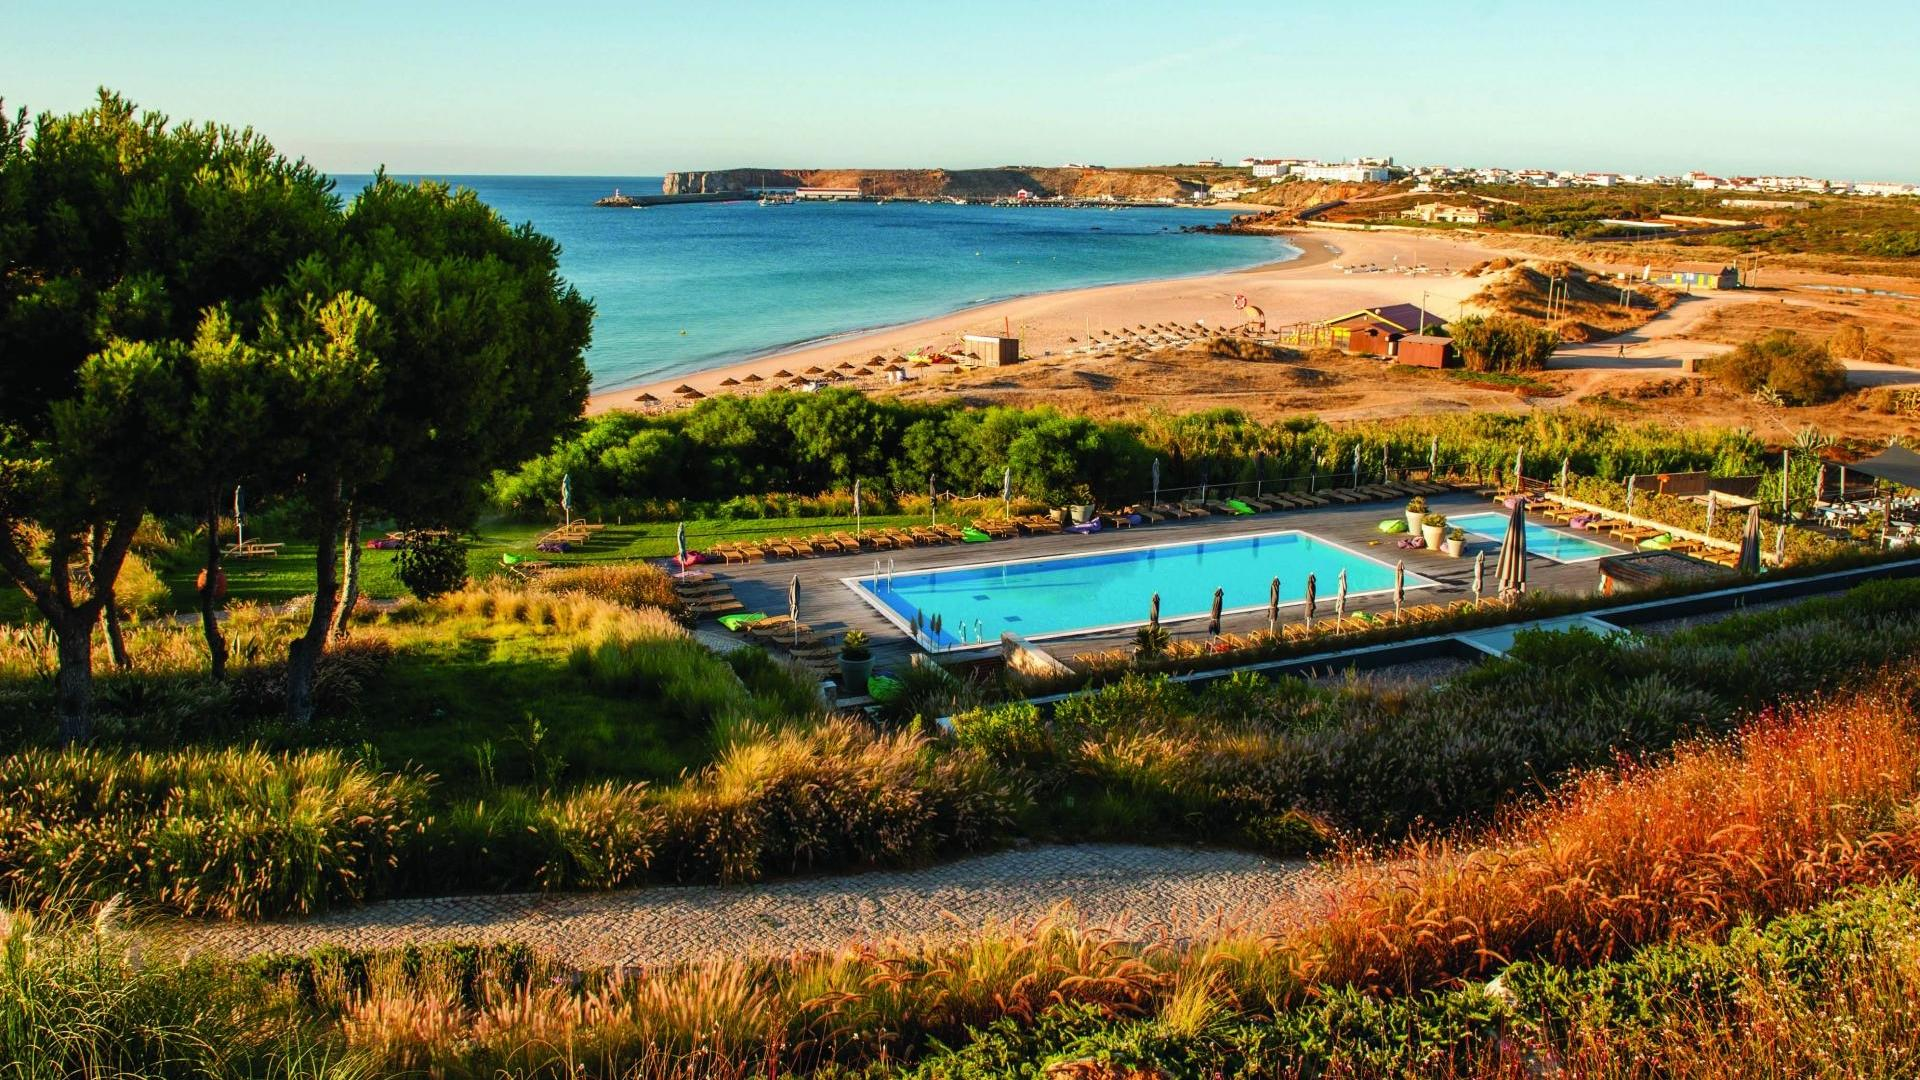 family friendly hotel and resort in the Algarve Portugal